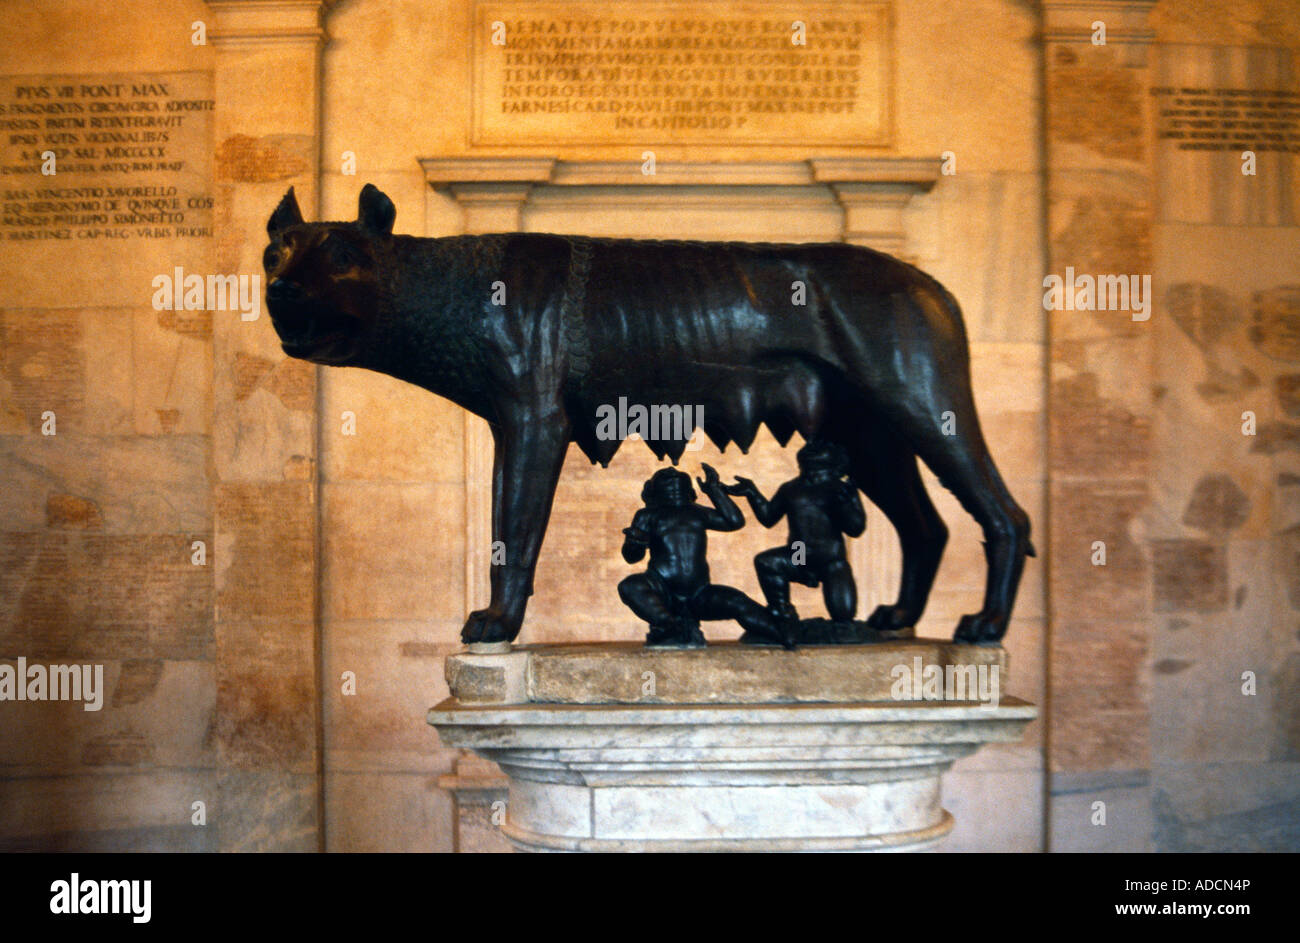 Rome Italy Capitoline Museum Capitoline She-wolf - Stock Image